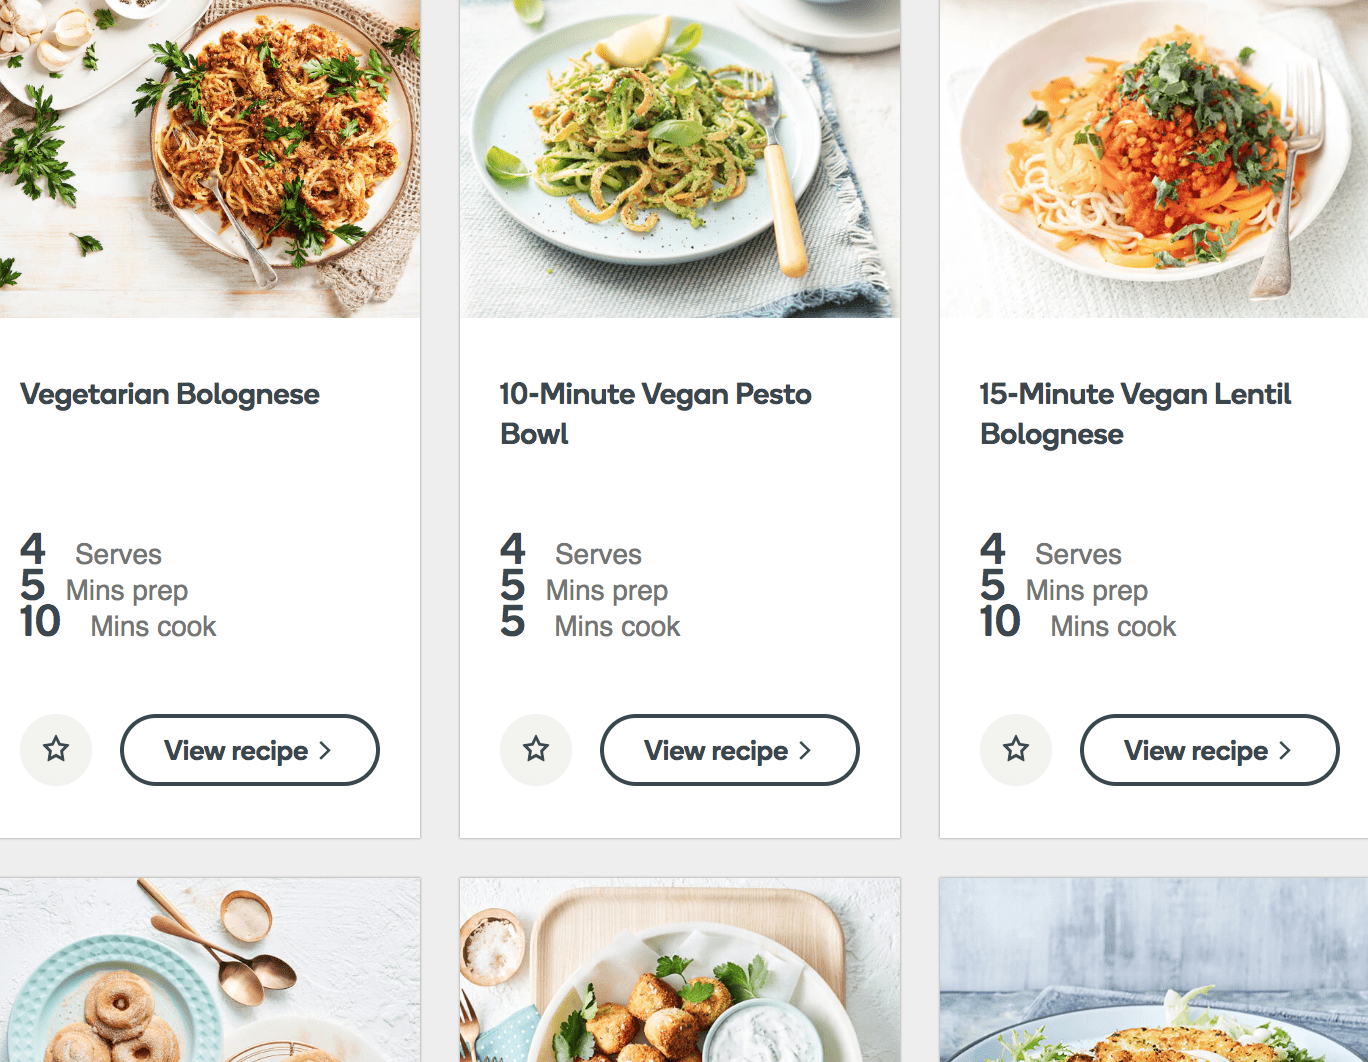 Woolworths have a vegan recipe page